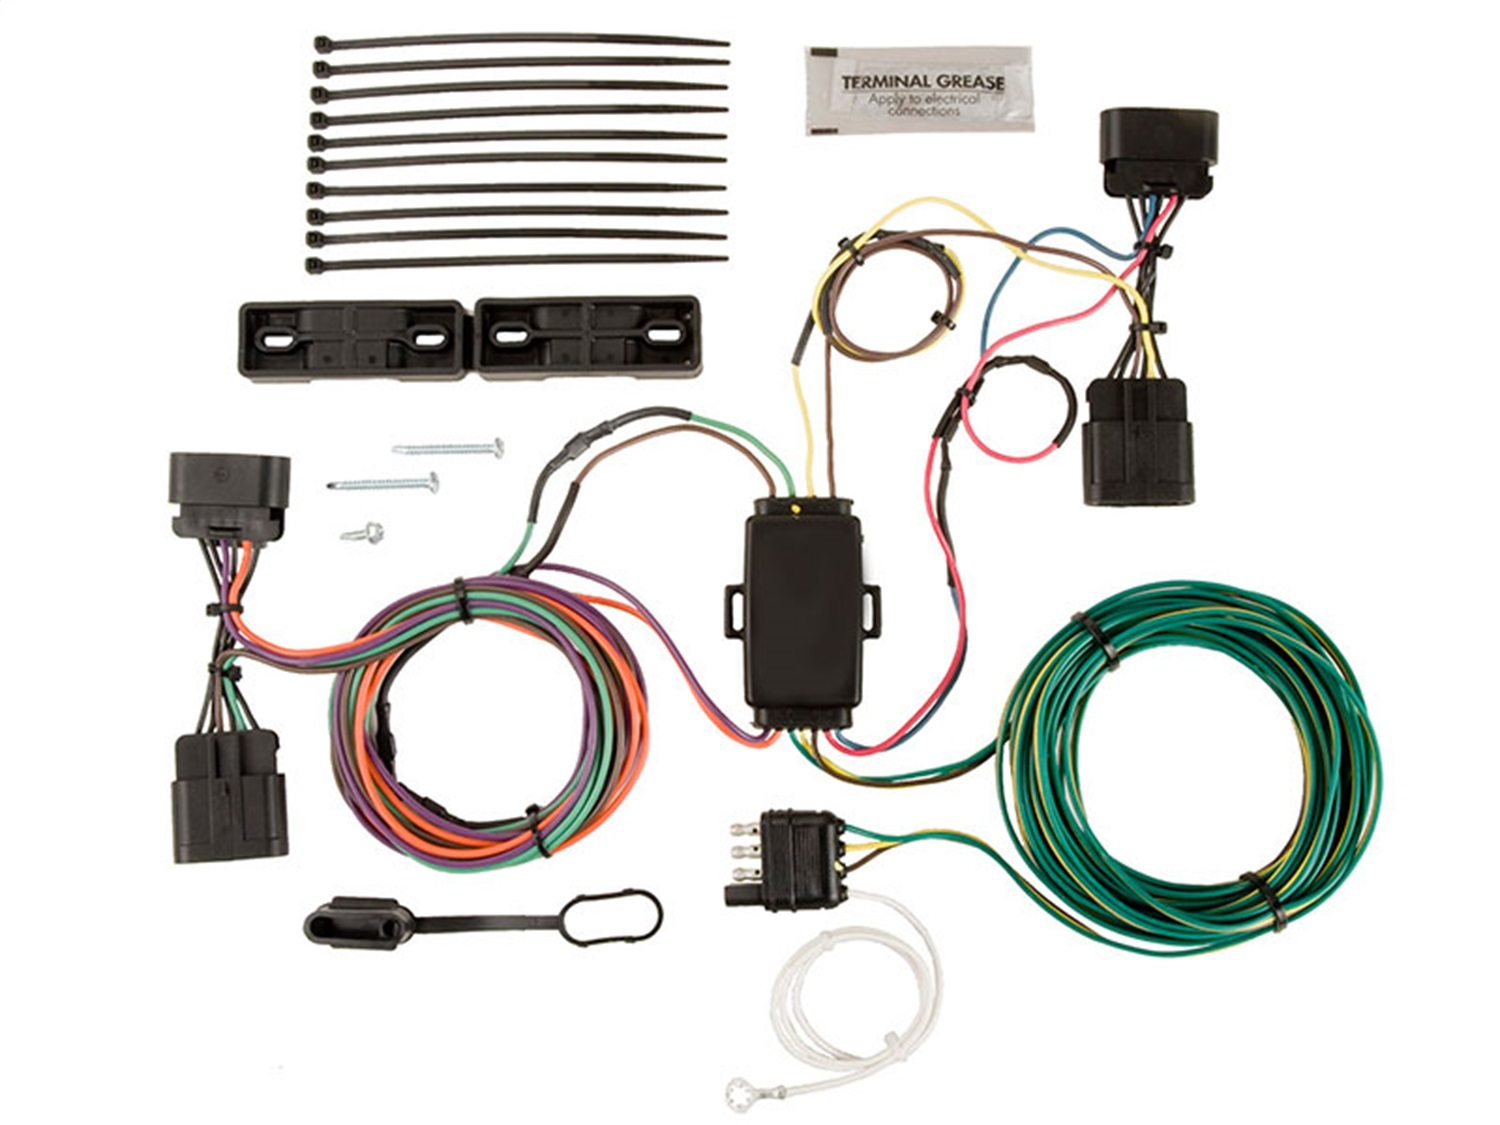 hight resolution of details about blue ox bx88336 ez light wiring harness kit fits 07 14 escalade esv escalade ext